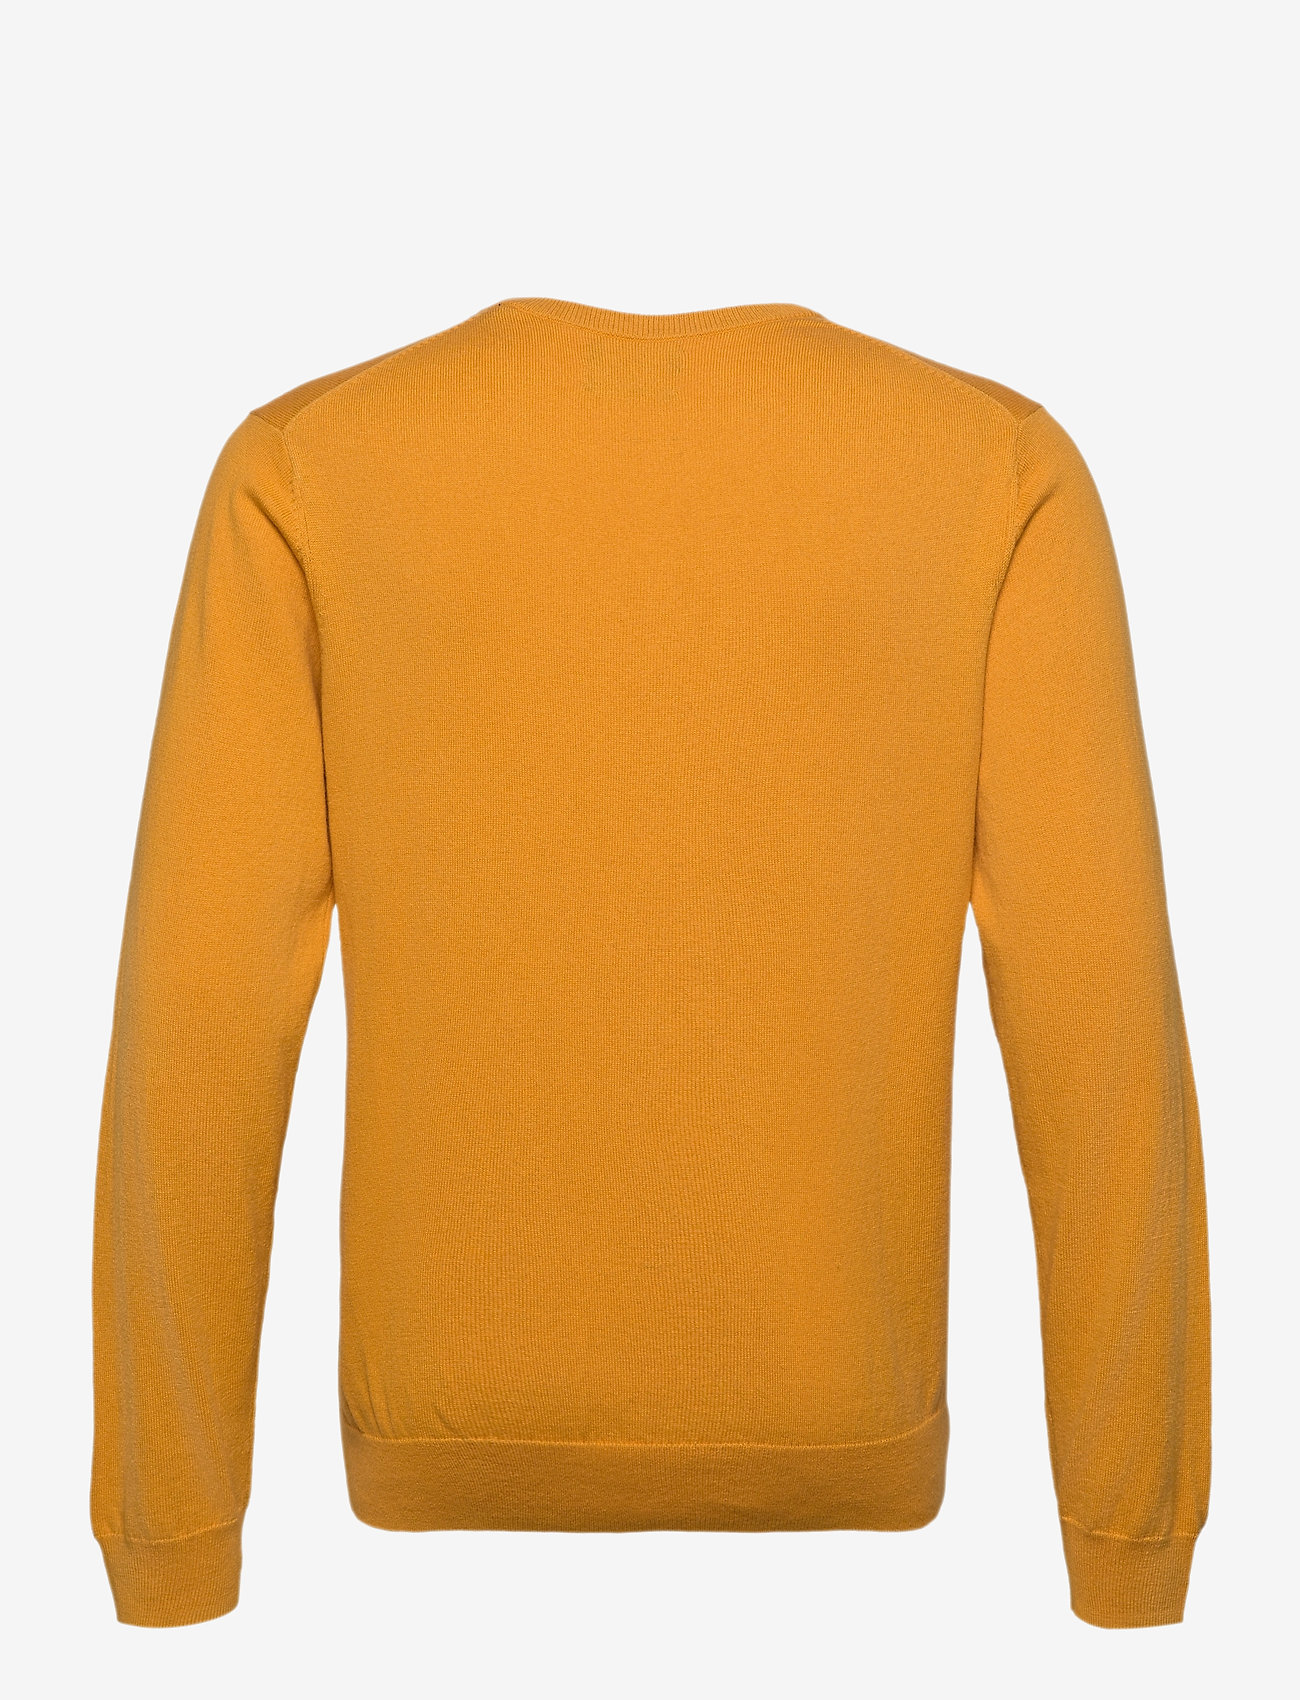 GANT - COTTON WOOL V-NECK - knitted v-necks - ivy gold - 1